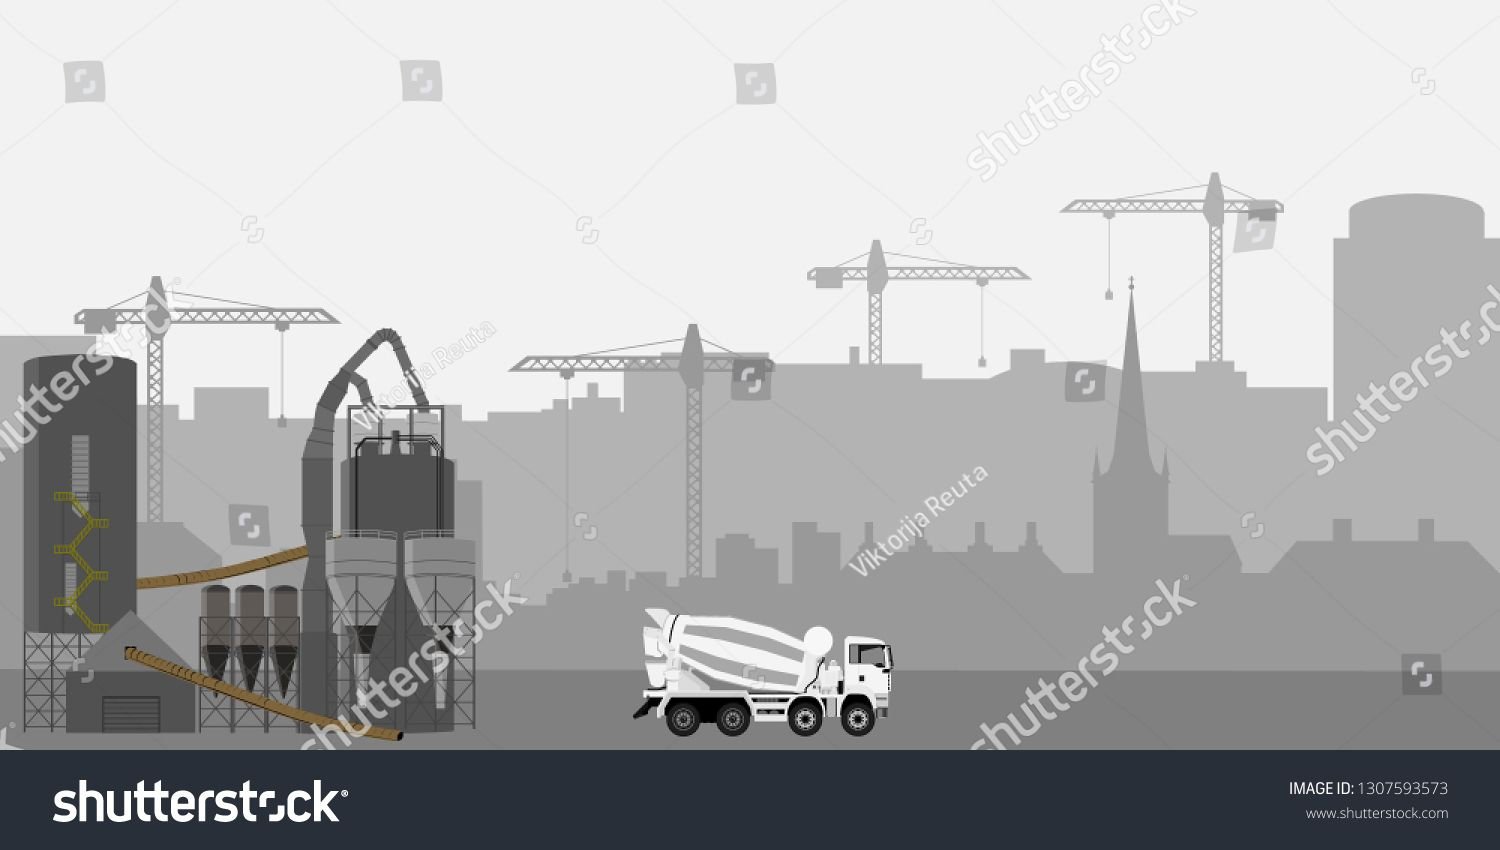 Abstract Industrial Skyline Concrete Cement Truck Mixet Truck